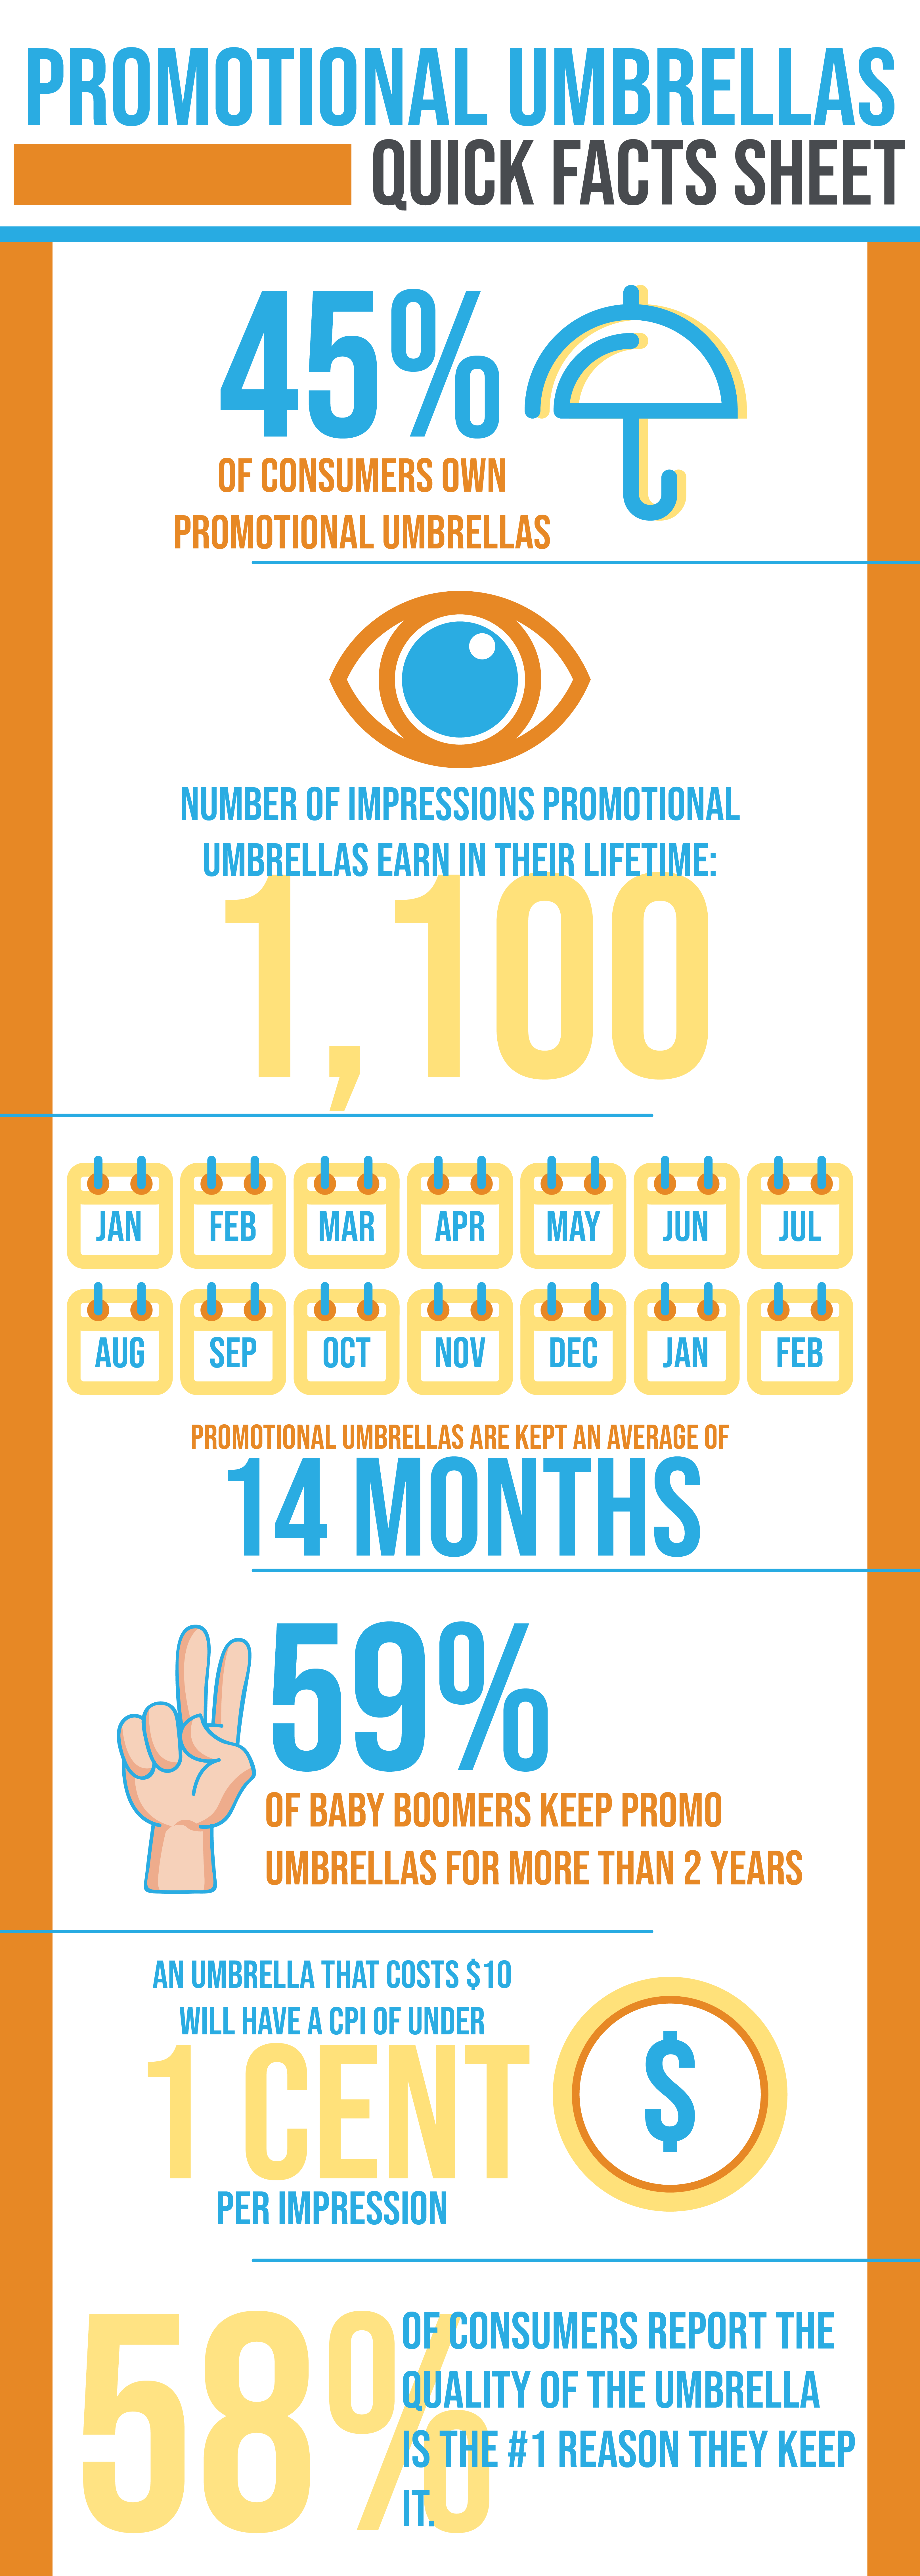 Umbrellas: The Promo Product With Staying Power [Infographic] 1